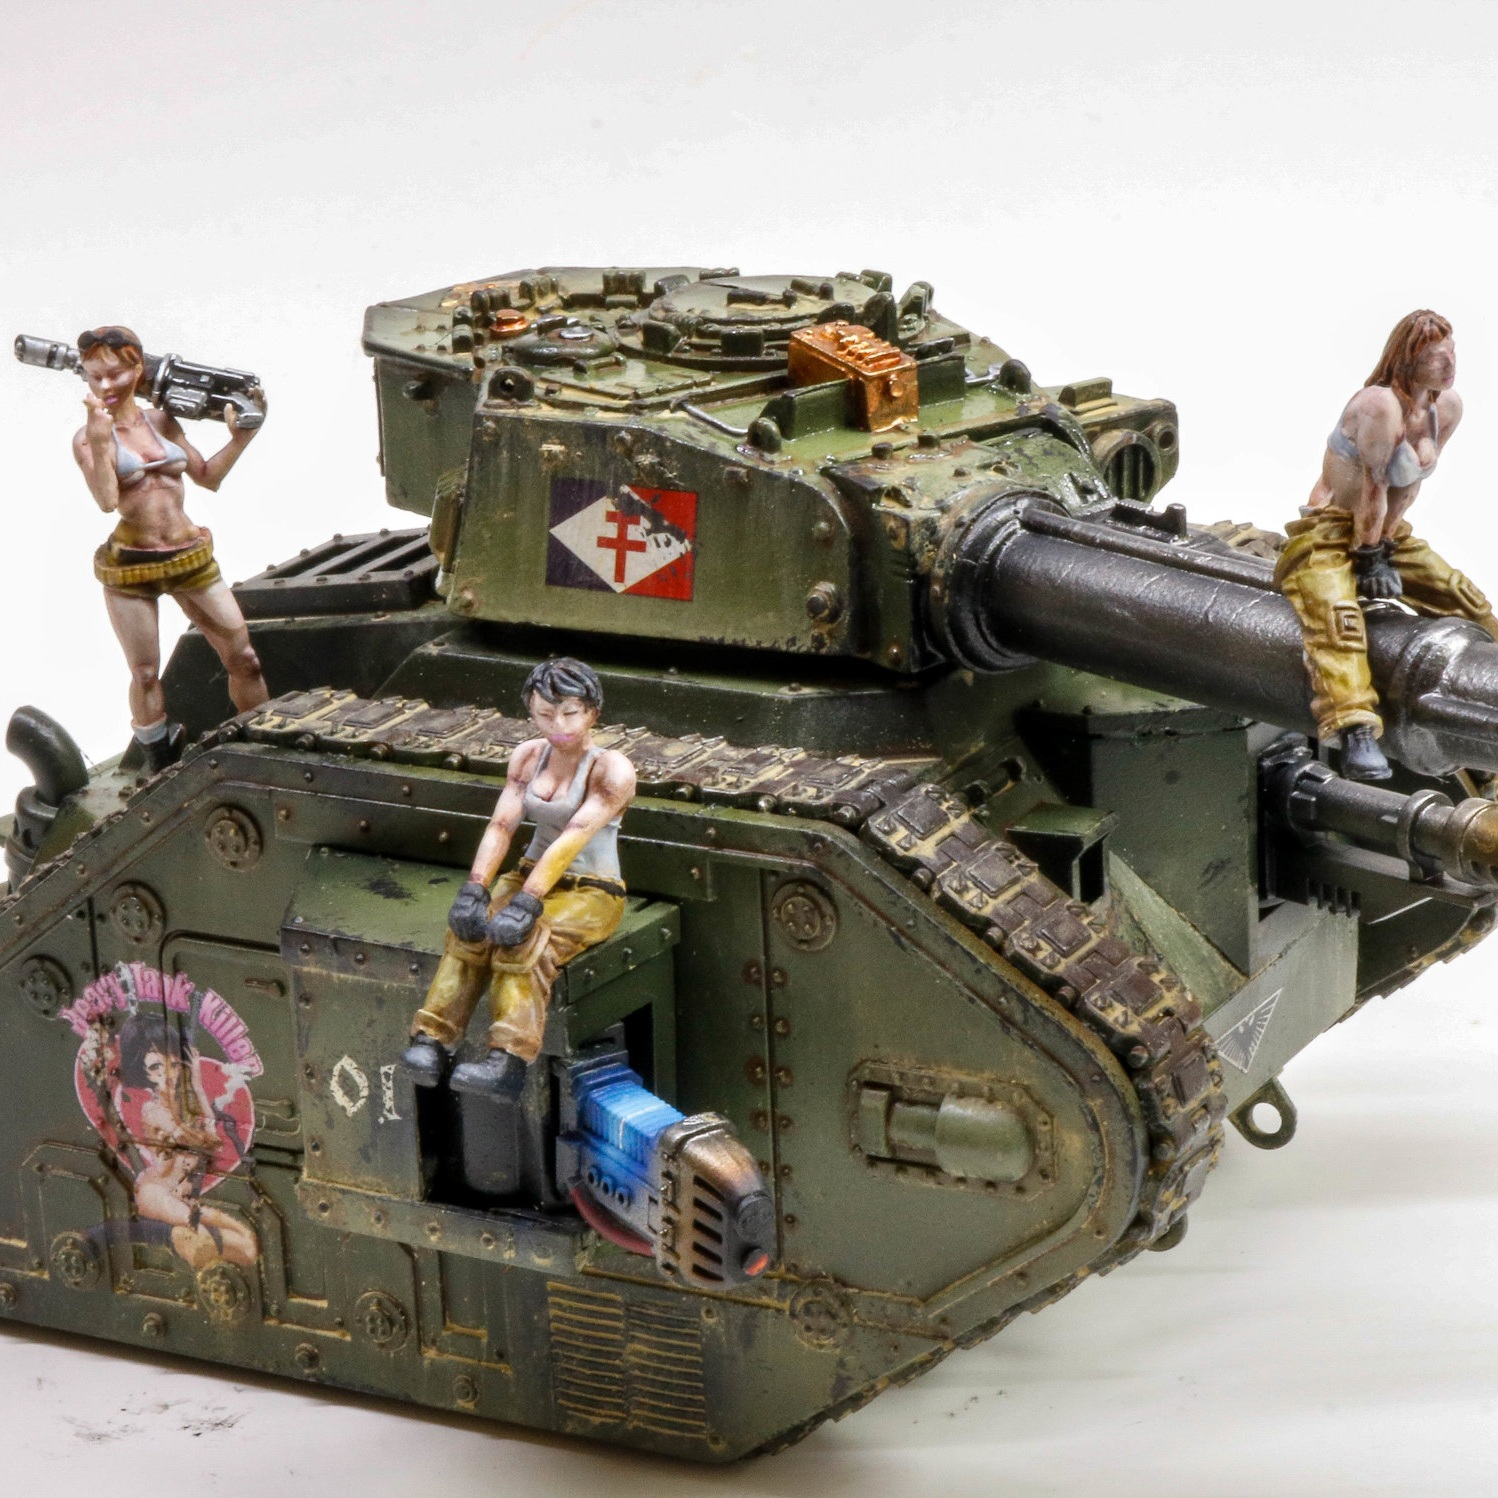 PIN UP GIRL IMPERIAL GUARD